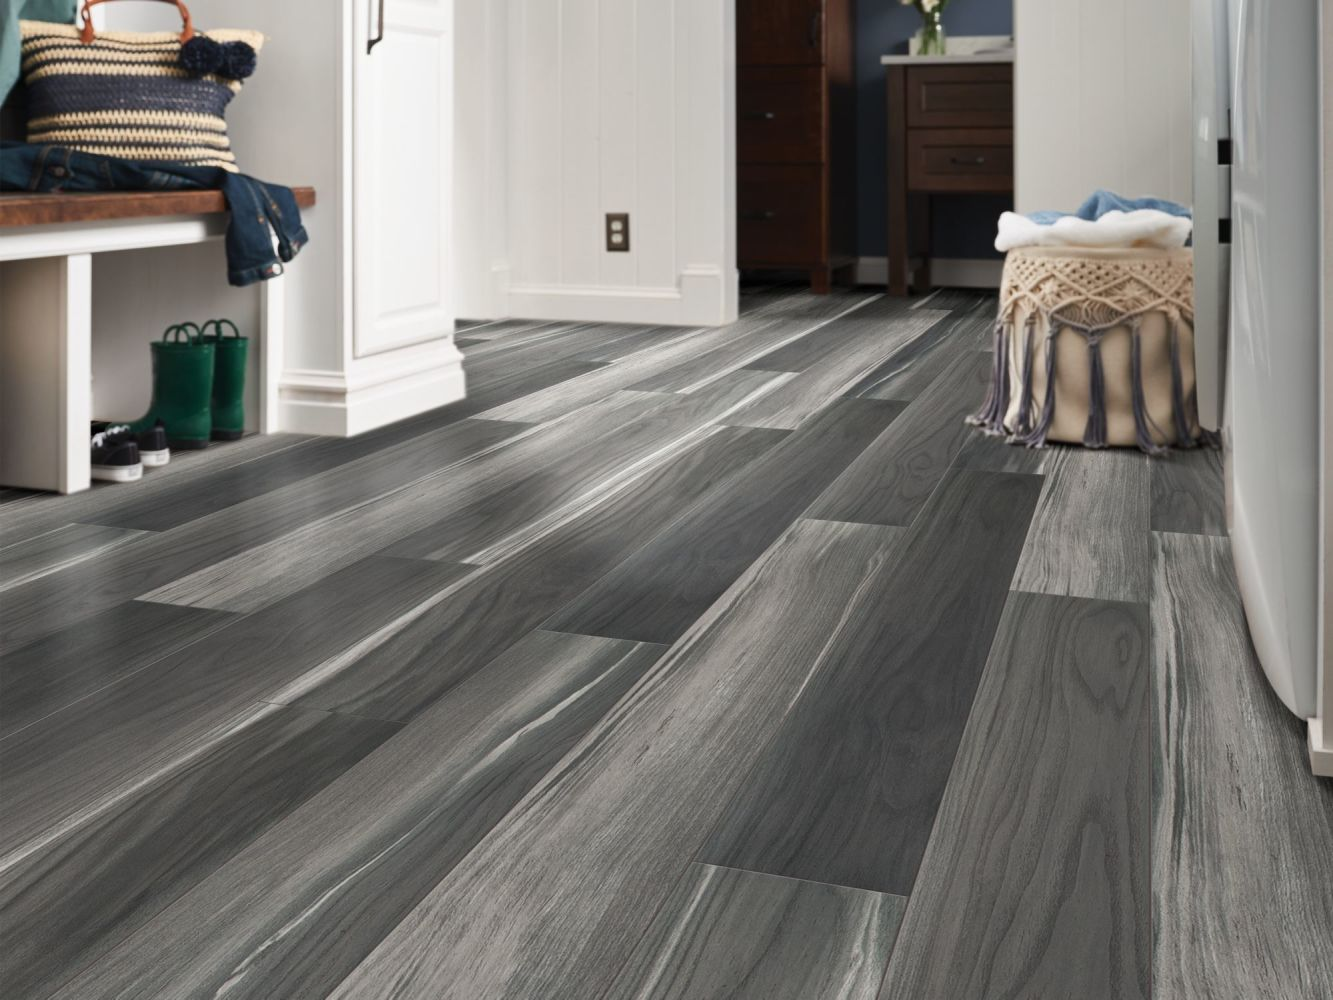 Shaw Floors Resilient Property Solutions Bonafide Hd+accent Shadow 00921_VE427